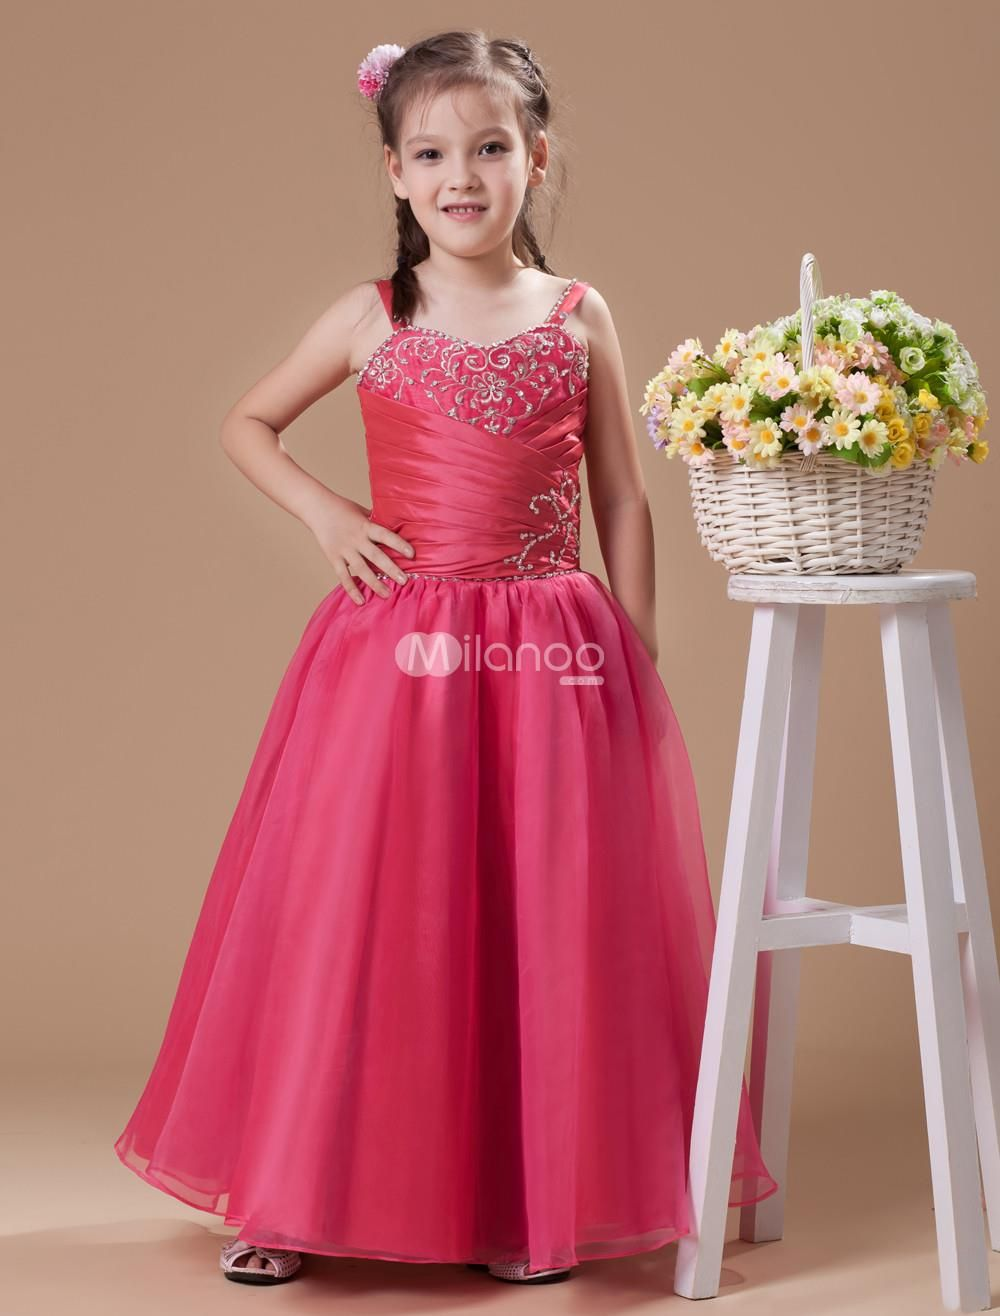 Check out my site Pageant dresses